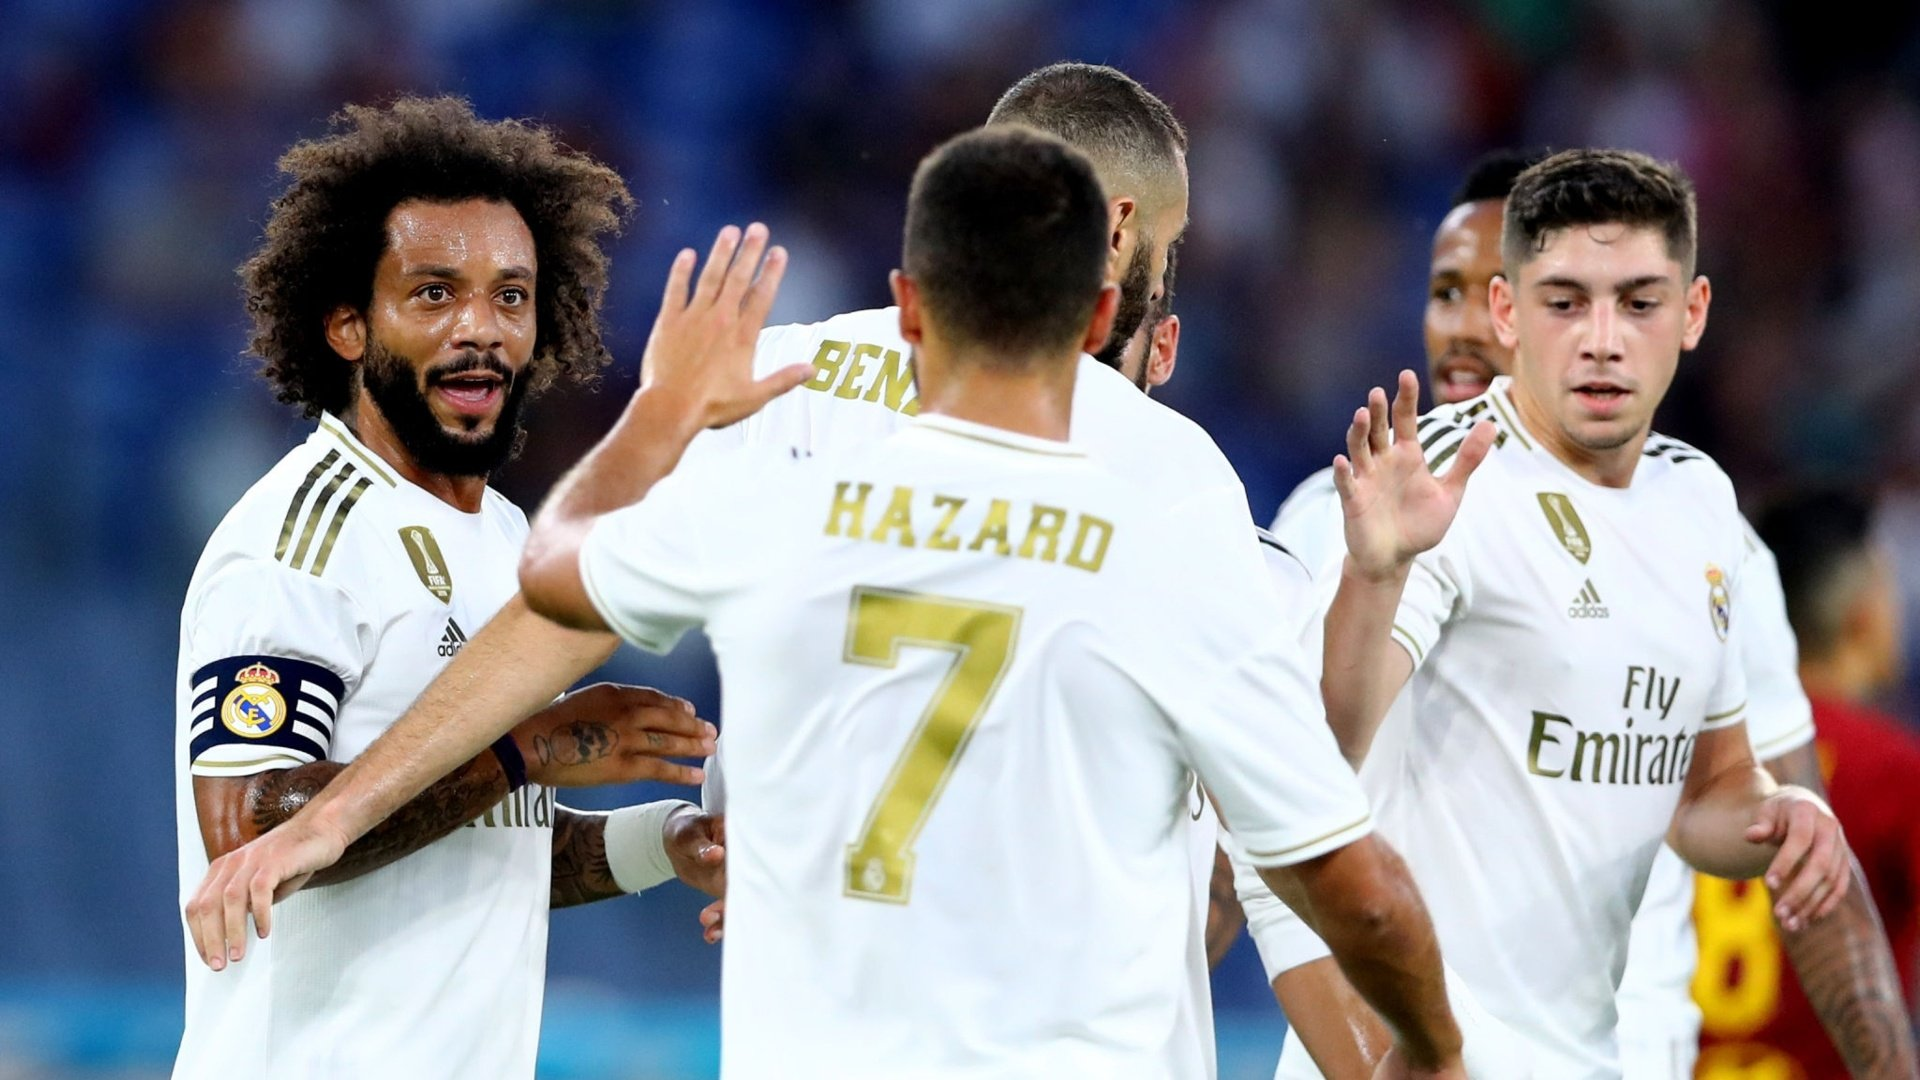 Match Report: AS Roma 2-2 Real Madrid (5-4 pens)